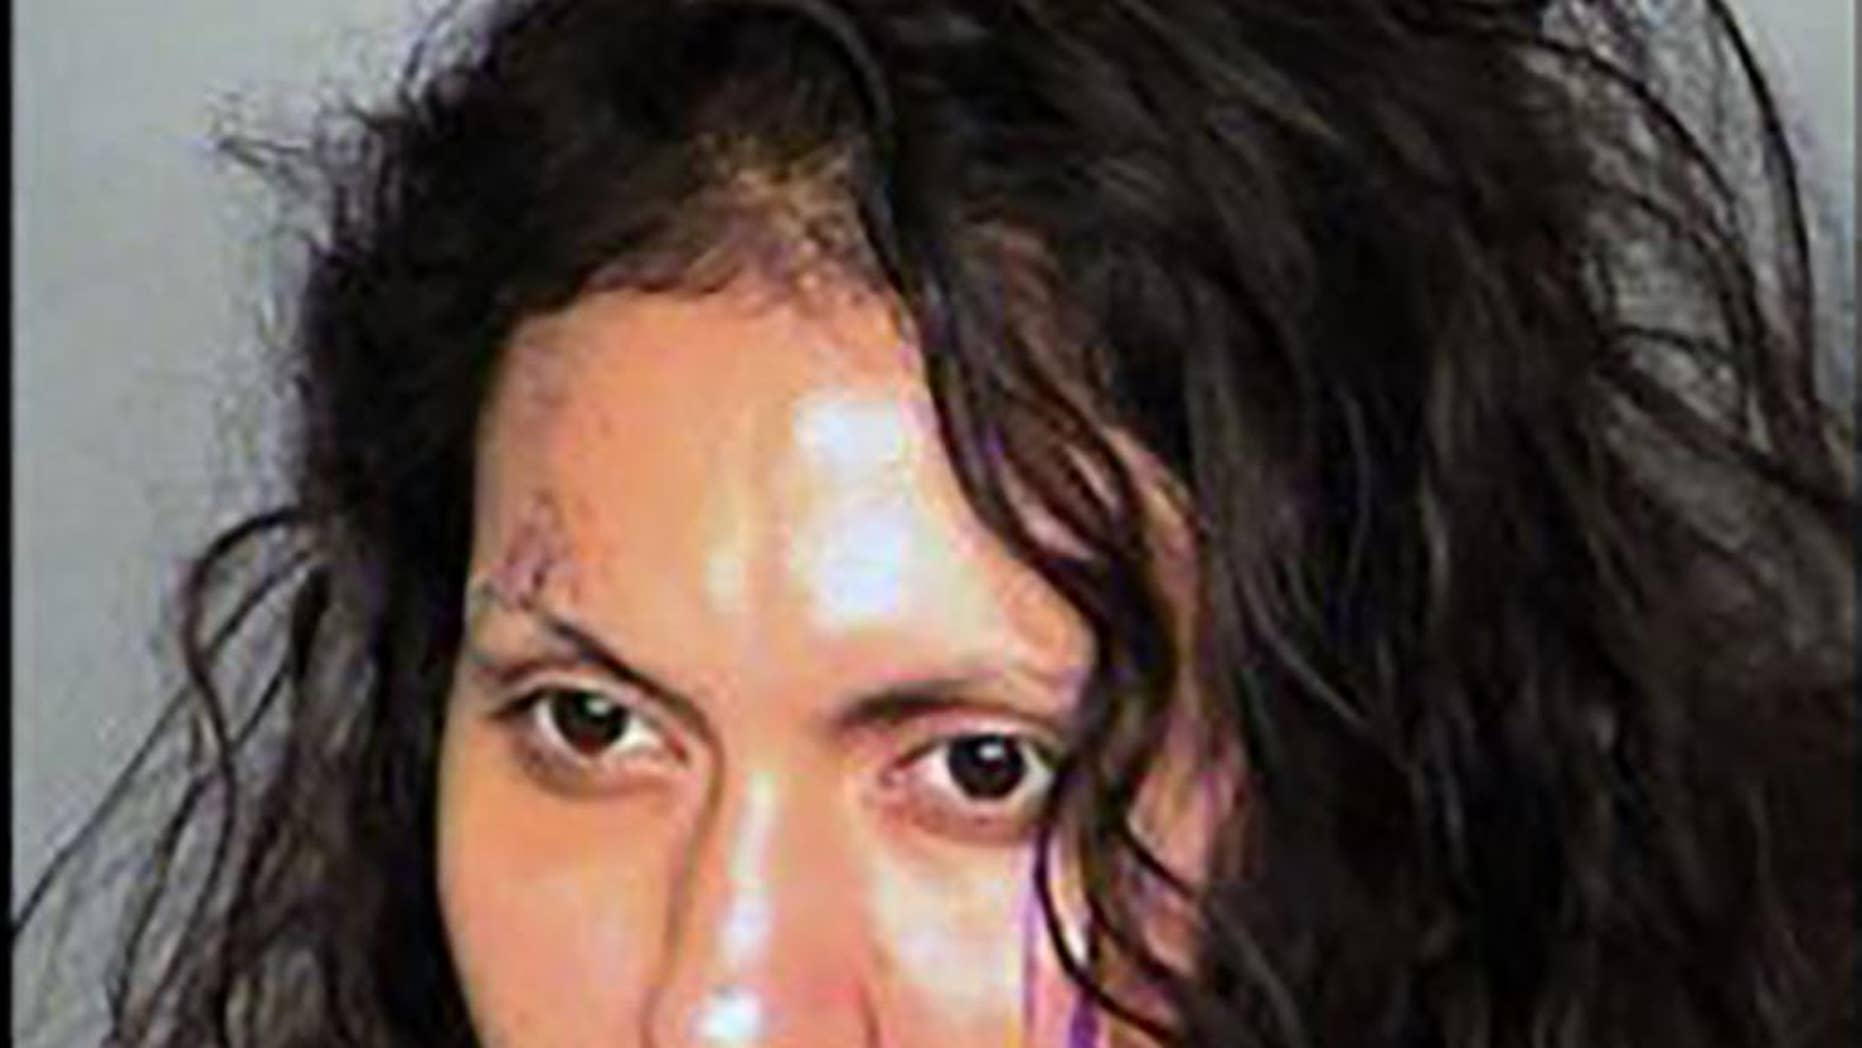 FILE - This undated booking photo provided by the Las Vegas Metropolitan Police Department shows Luz Robledo Ibarra. On Friday, Sept. 26, 2014, defense lawyer Benson Lee says he will fight a finding that Ibarra, 34, is fit for trial on charges alleging she threw her 7-month-old son and 1½-year-old daughter out a second-story window before jumping out herself. (AP Photo/Las Vegas Metropolitan Police Department, File)